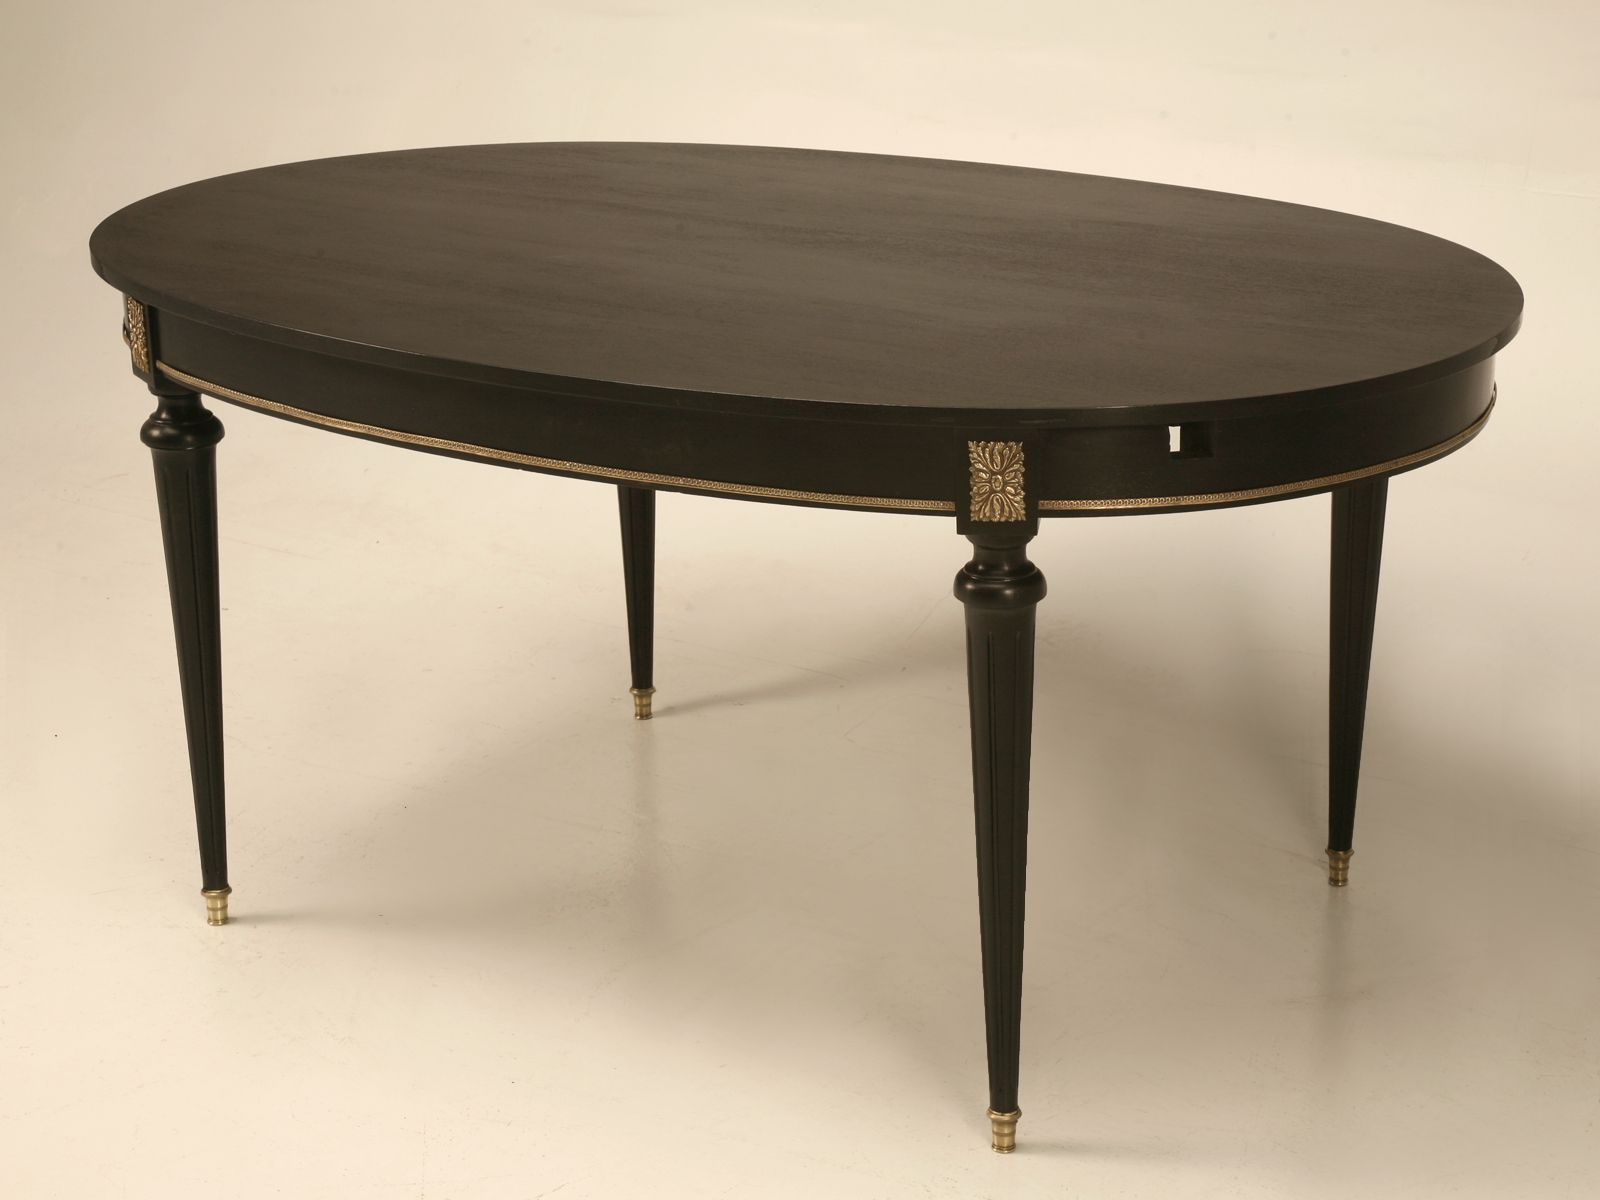 Vintage French Ebonized Louis Xvi Style Oval Dining Table With